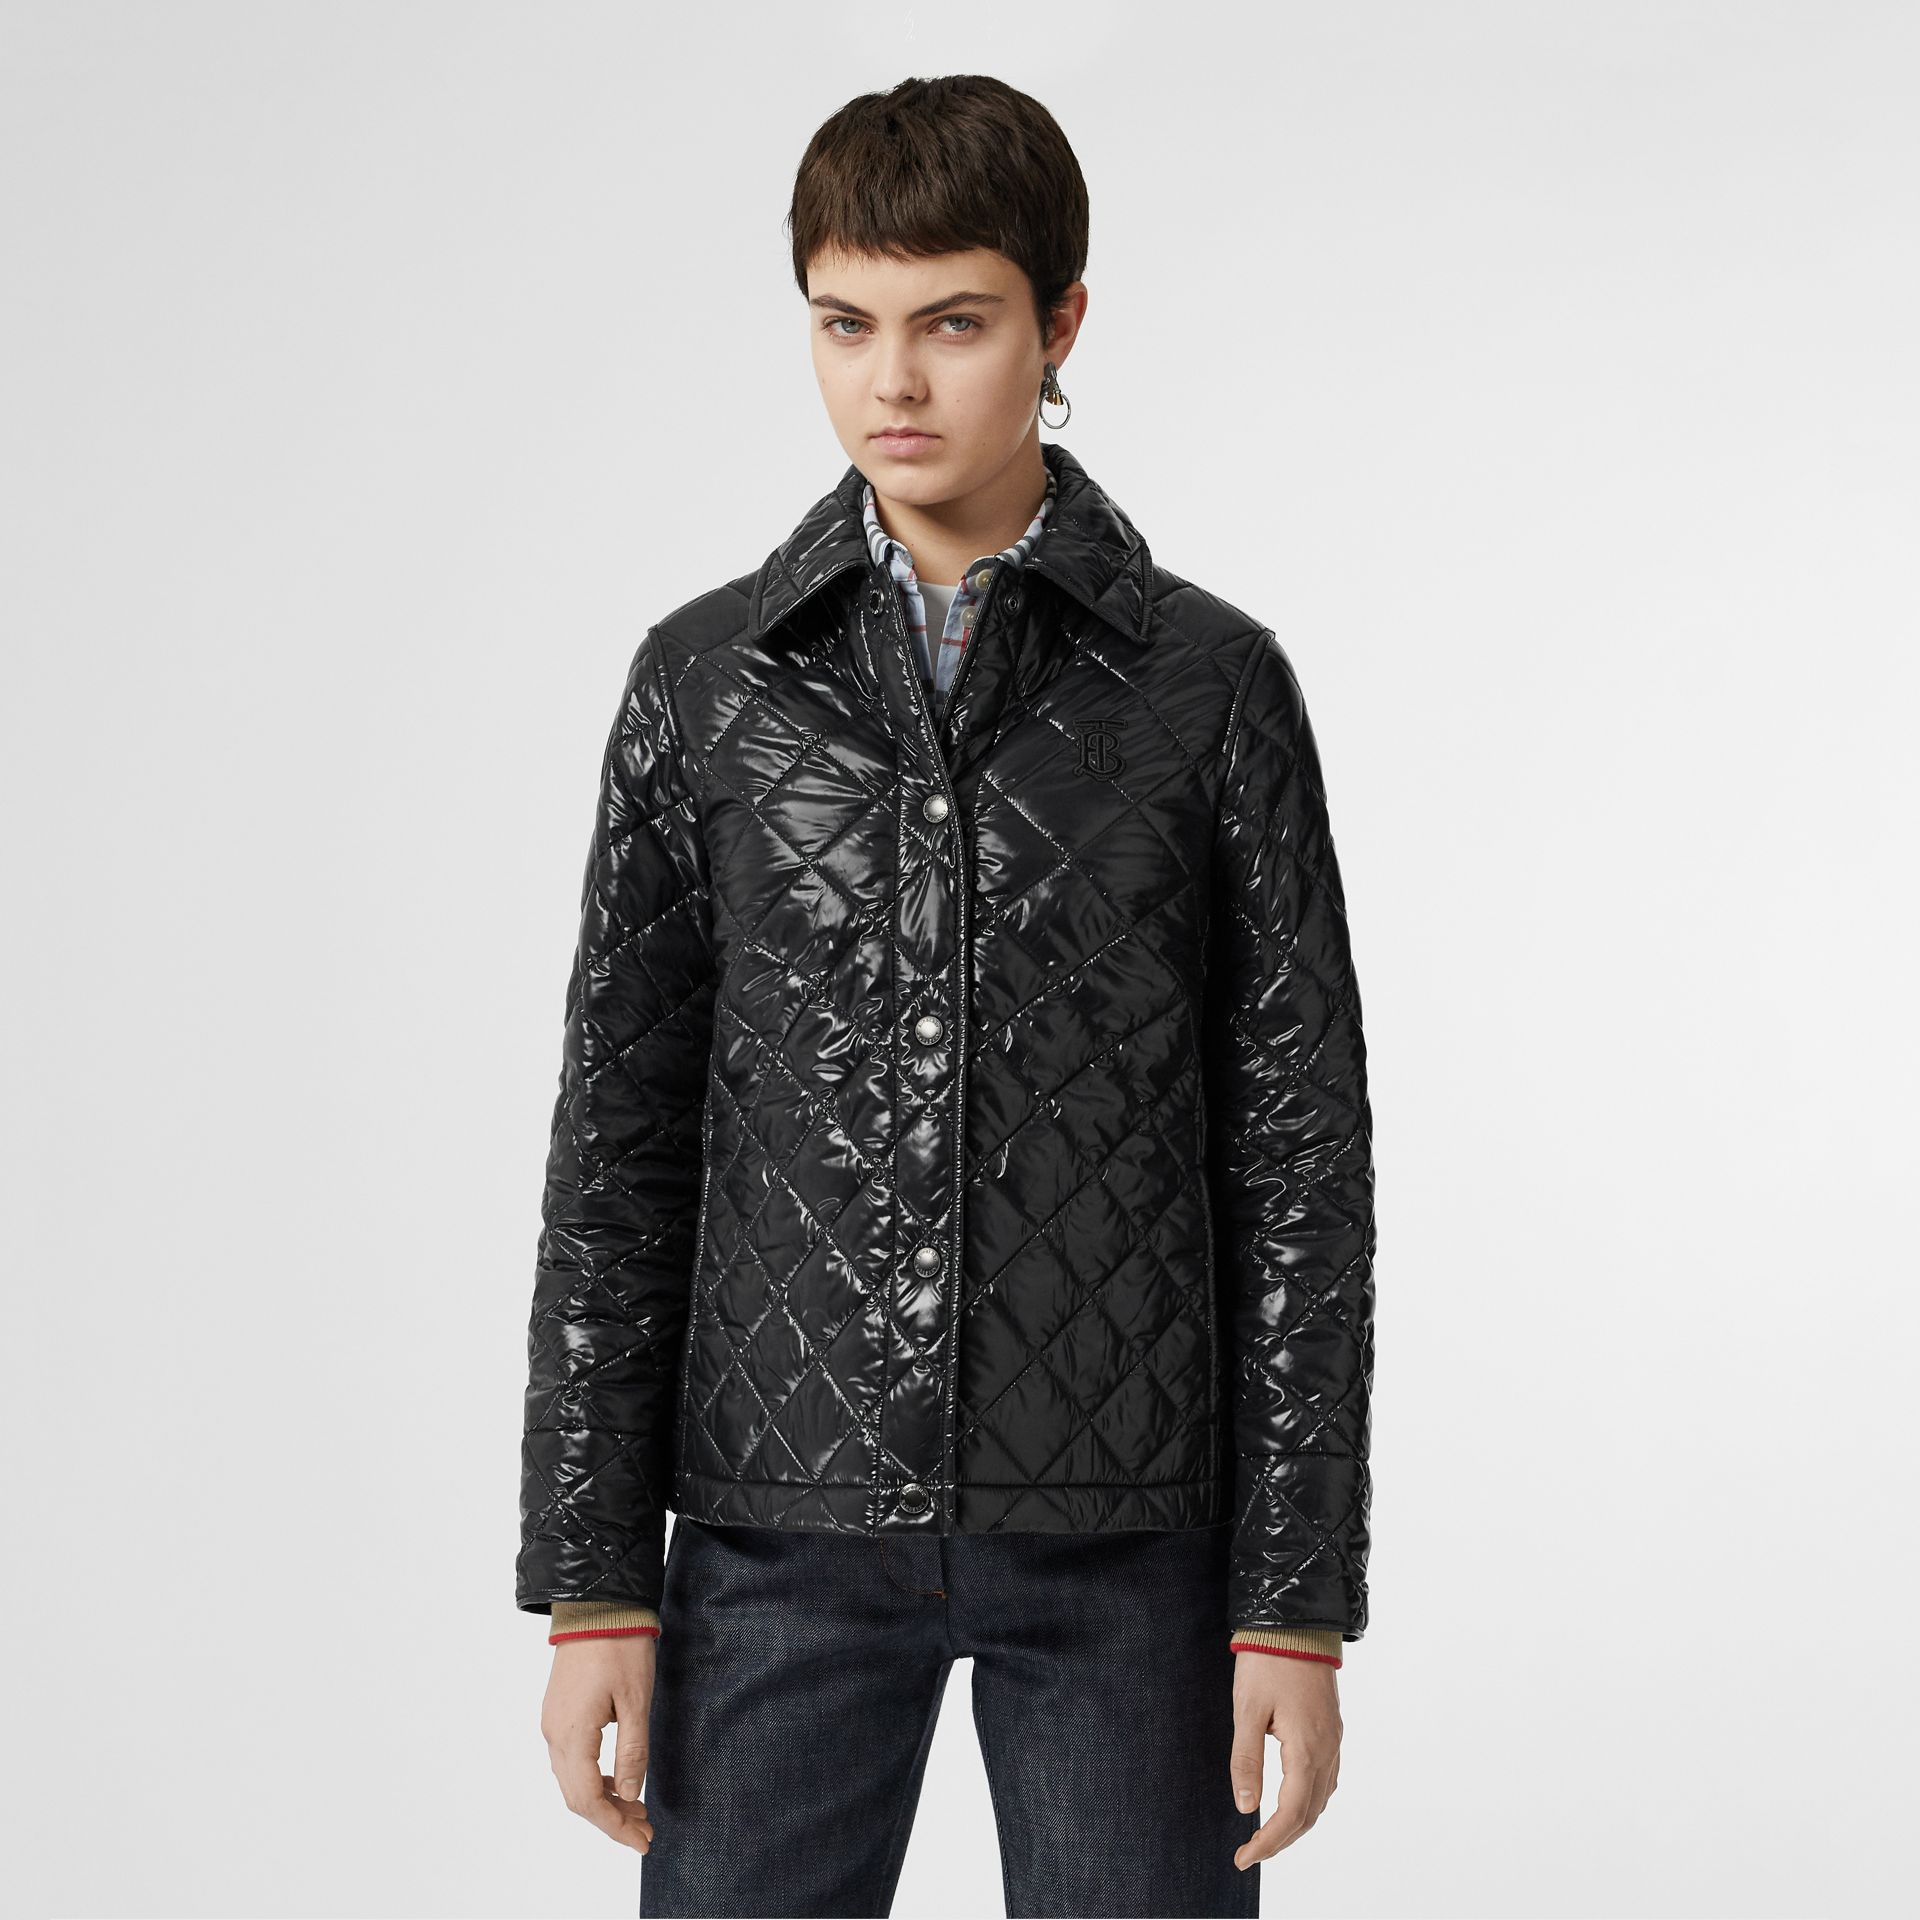 Monogram Motif Diamond Quilted Jacket in Black - Women | Burberry - gallery image 5